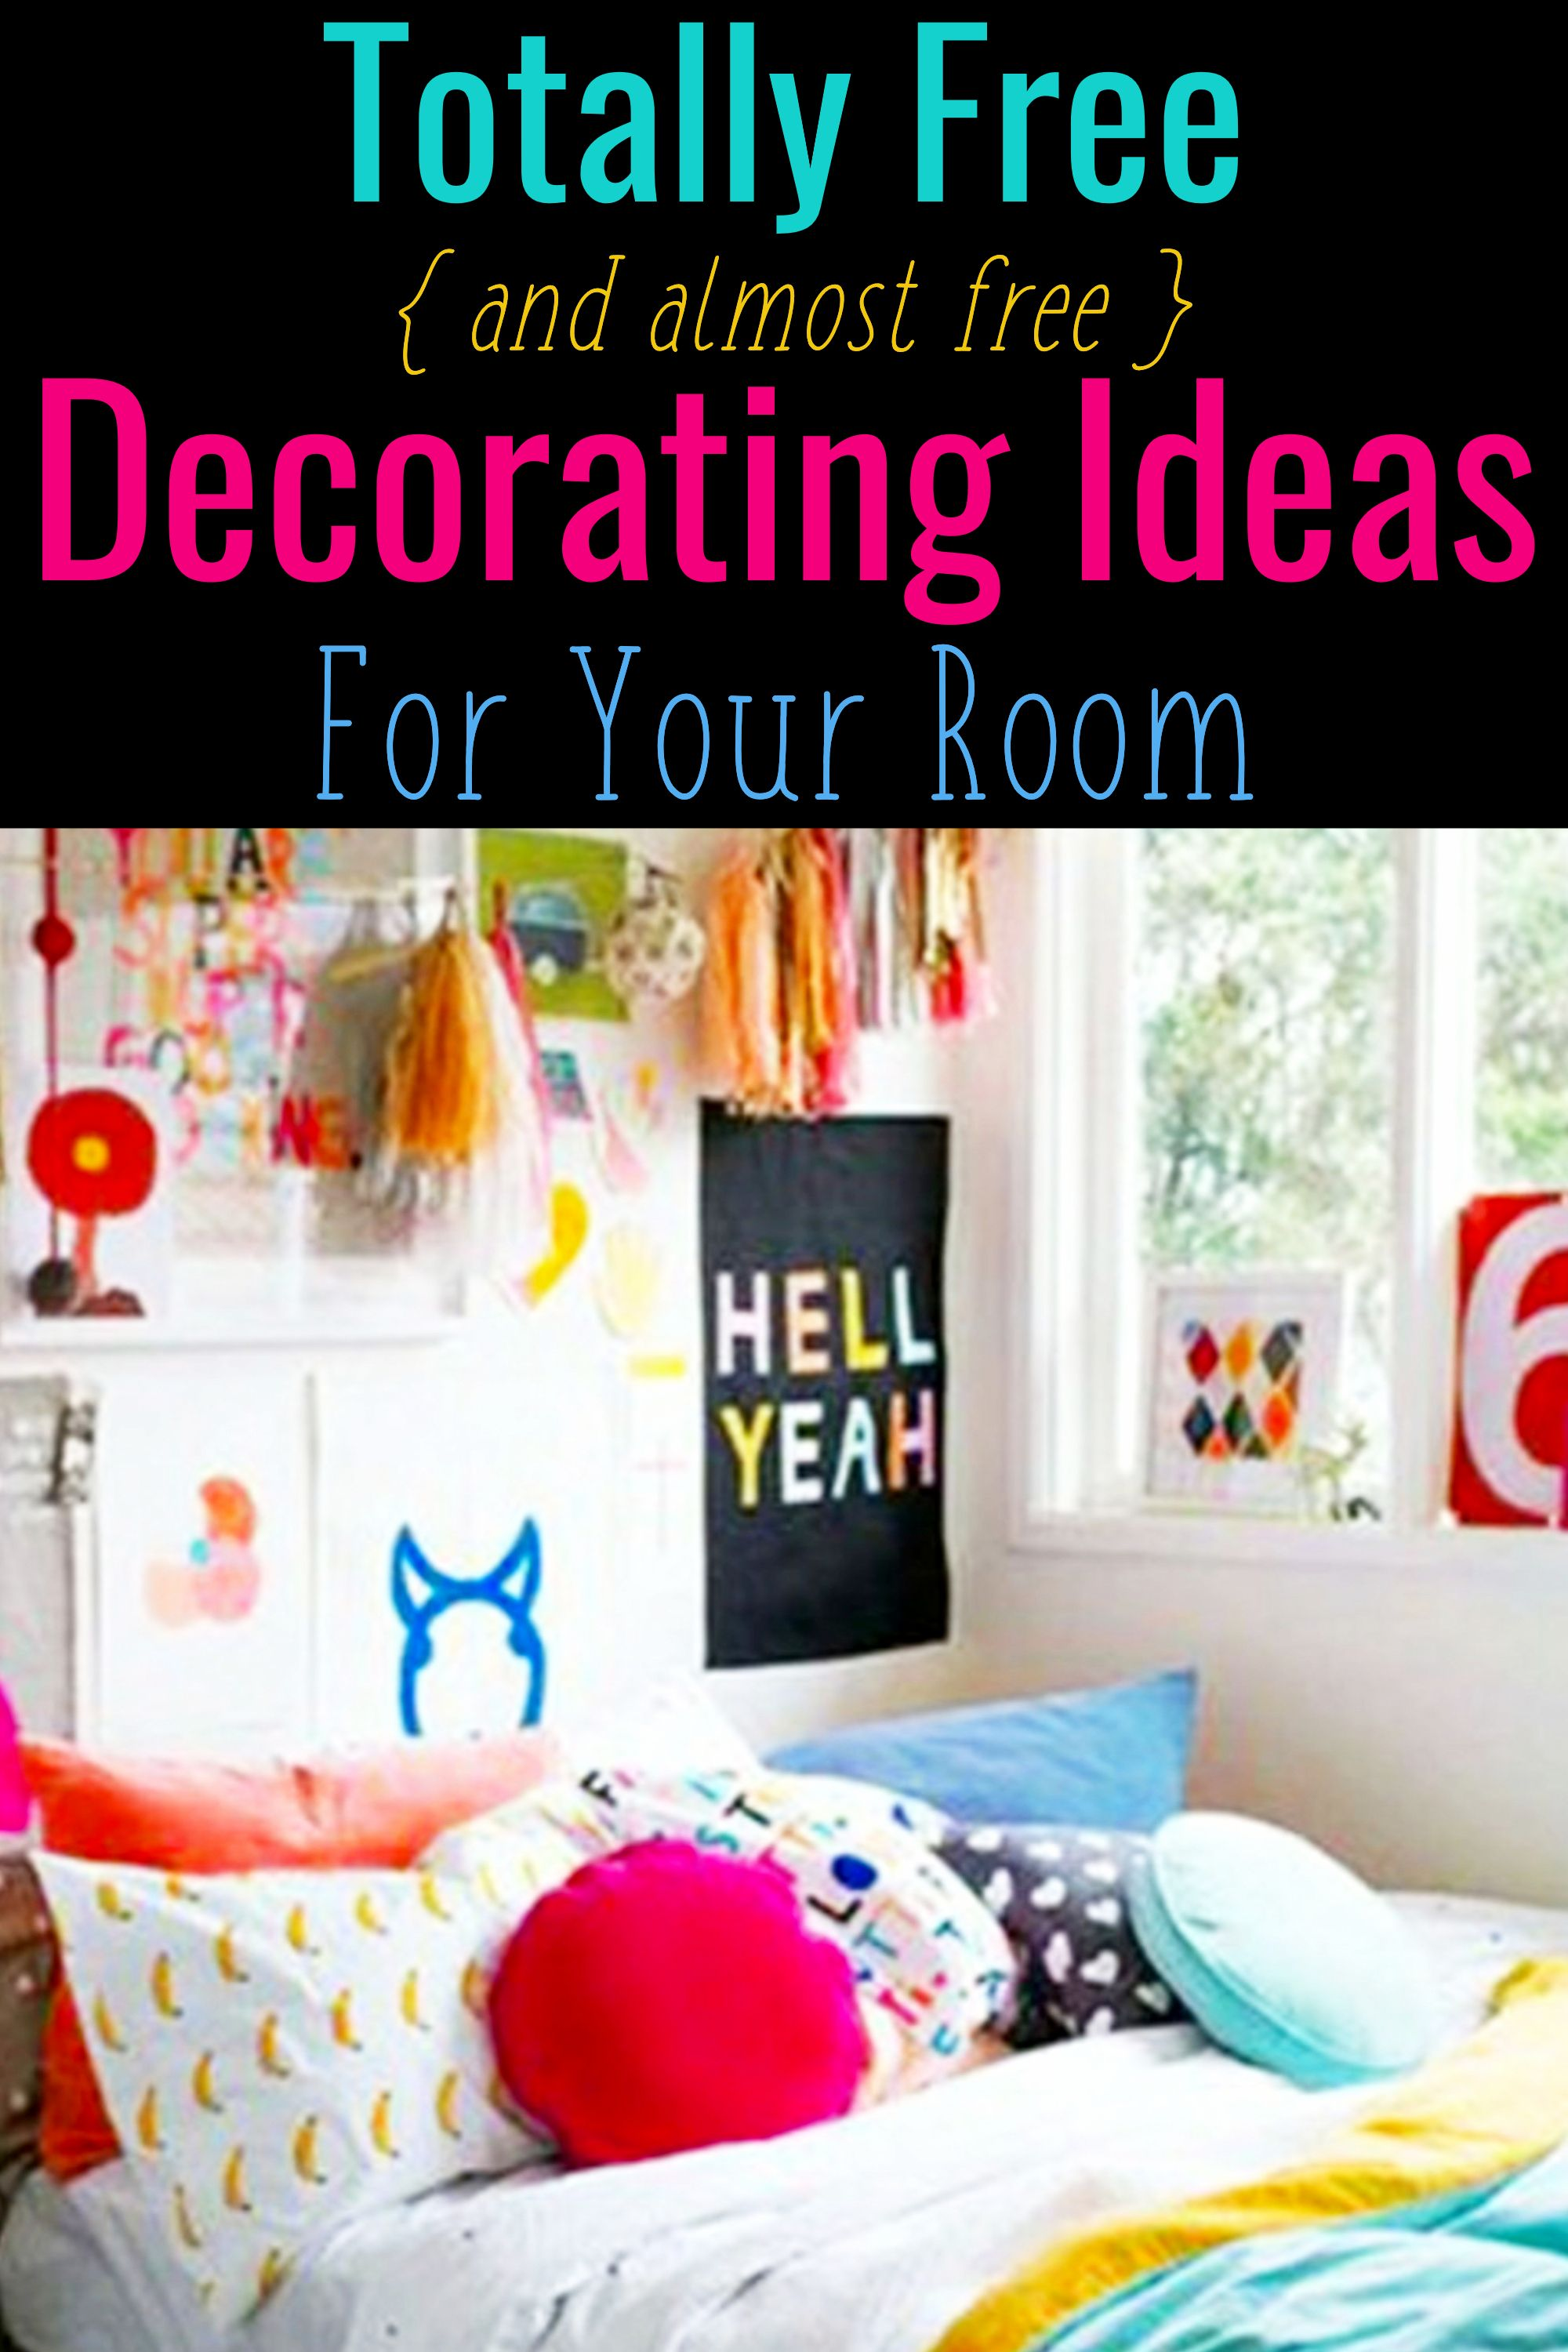 How To Decorate Your Room Without Buying Anything Decorating Tips Tricks Creative Home Decor Cheap Bedroom Ideas Decorate Your Room